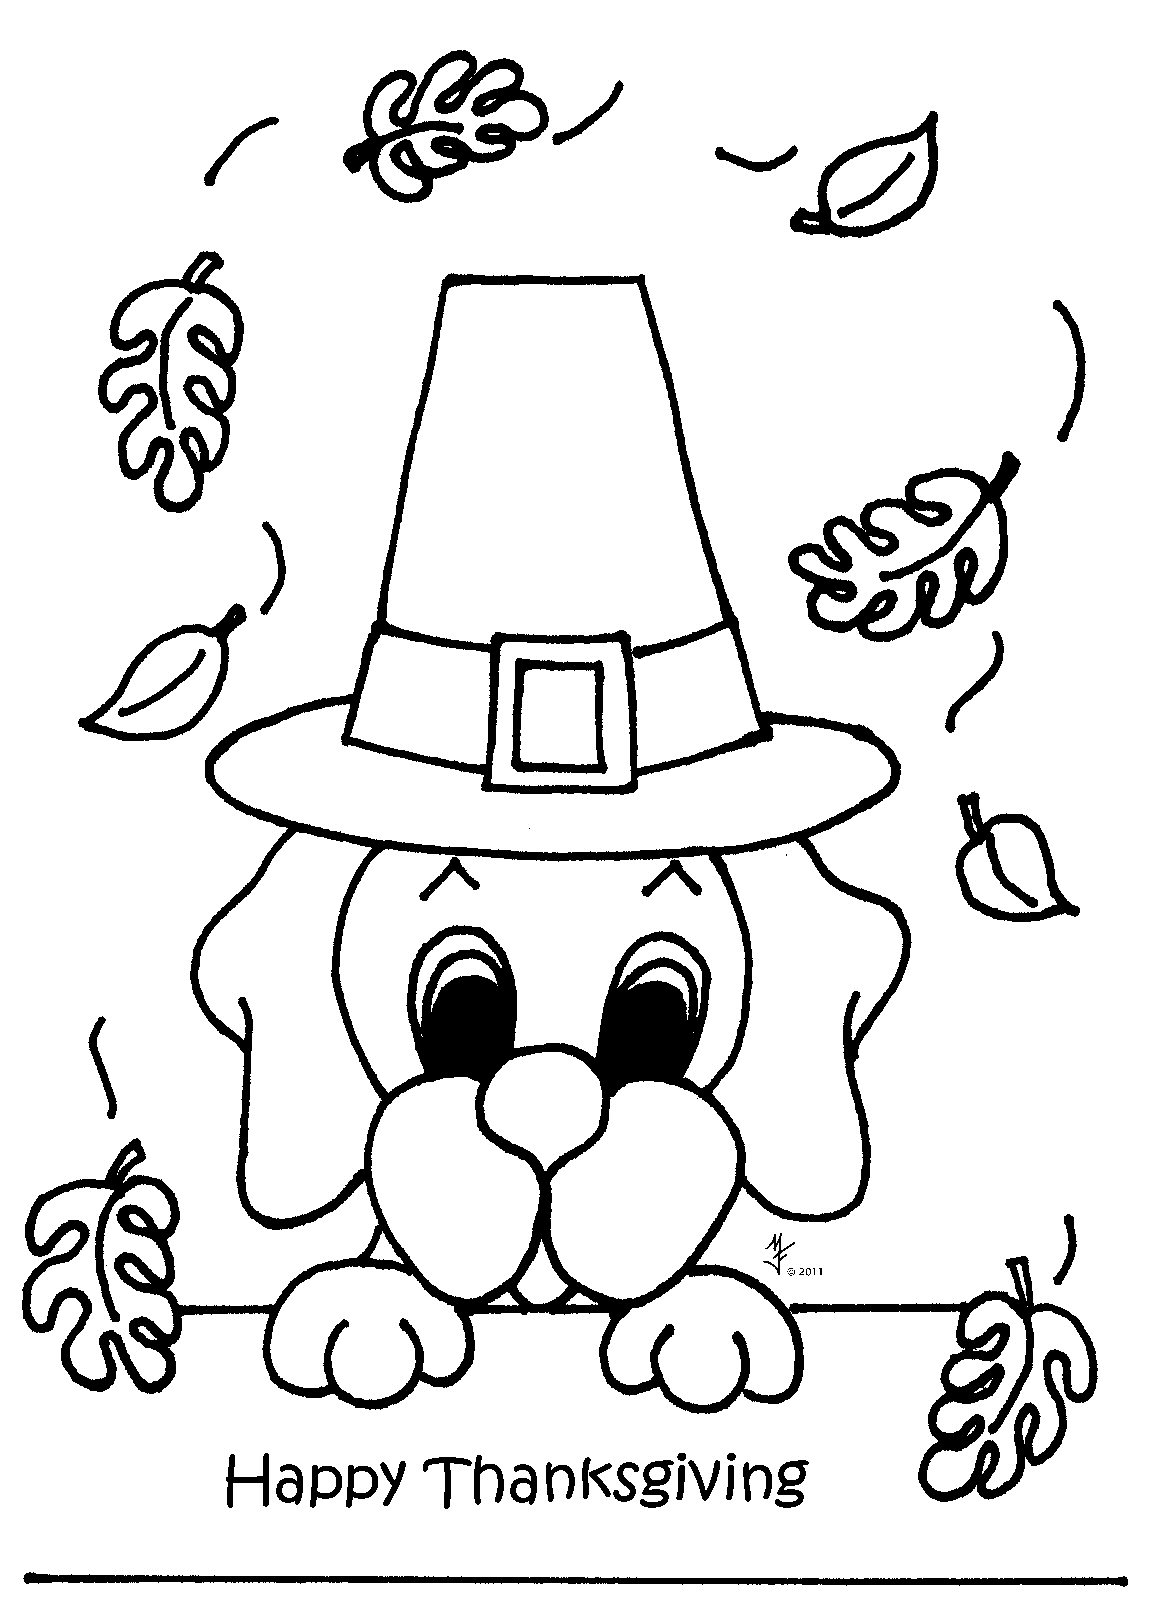 November coloring pages to download